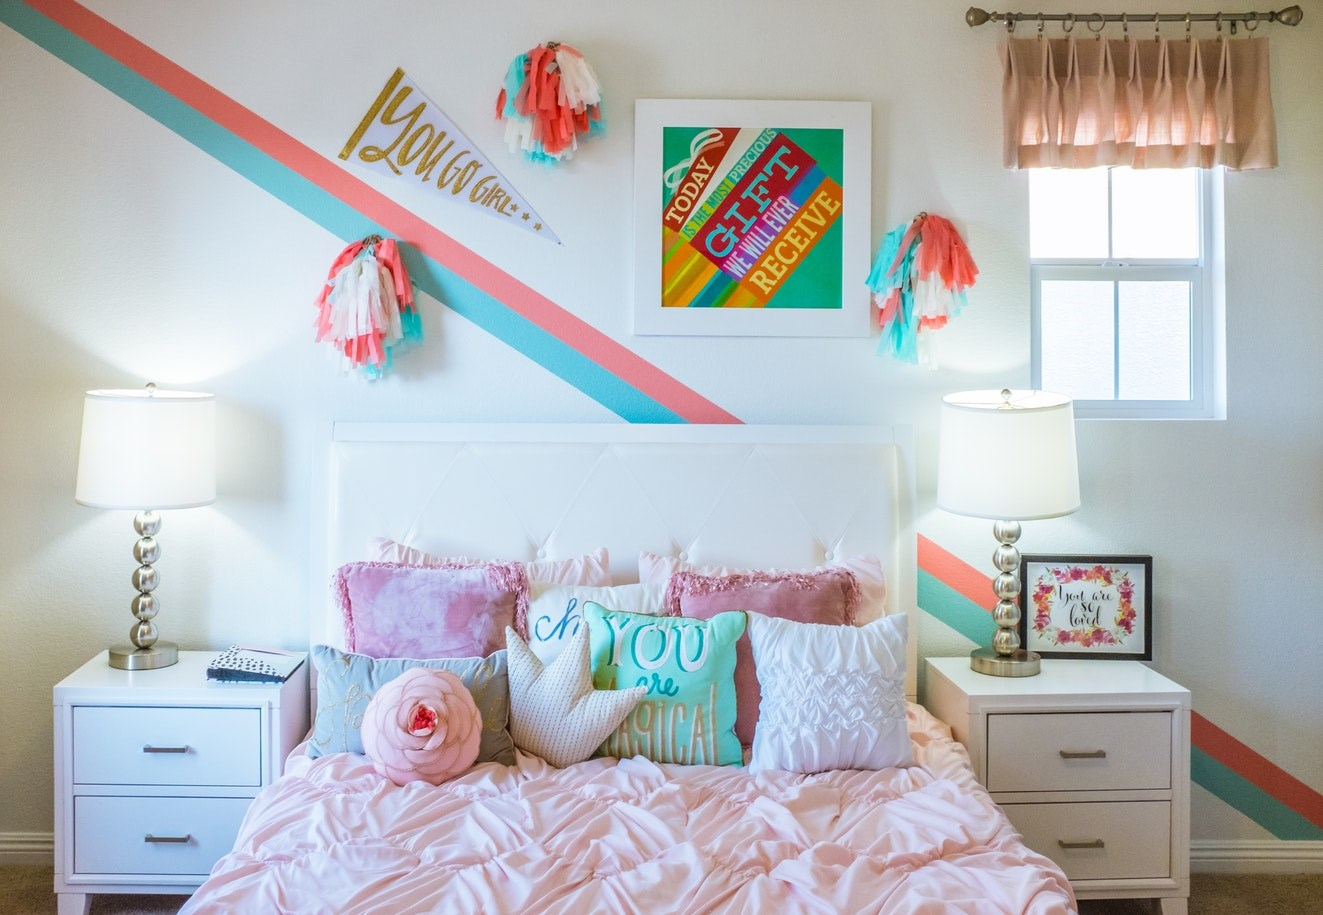 4 Tips for Designing a Safe Kids' Bedroom